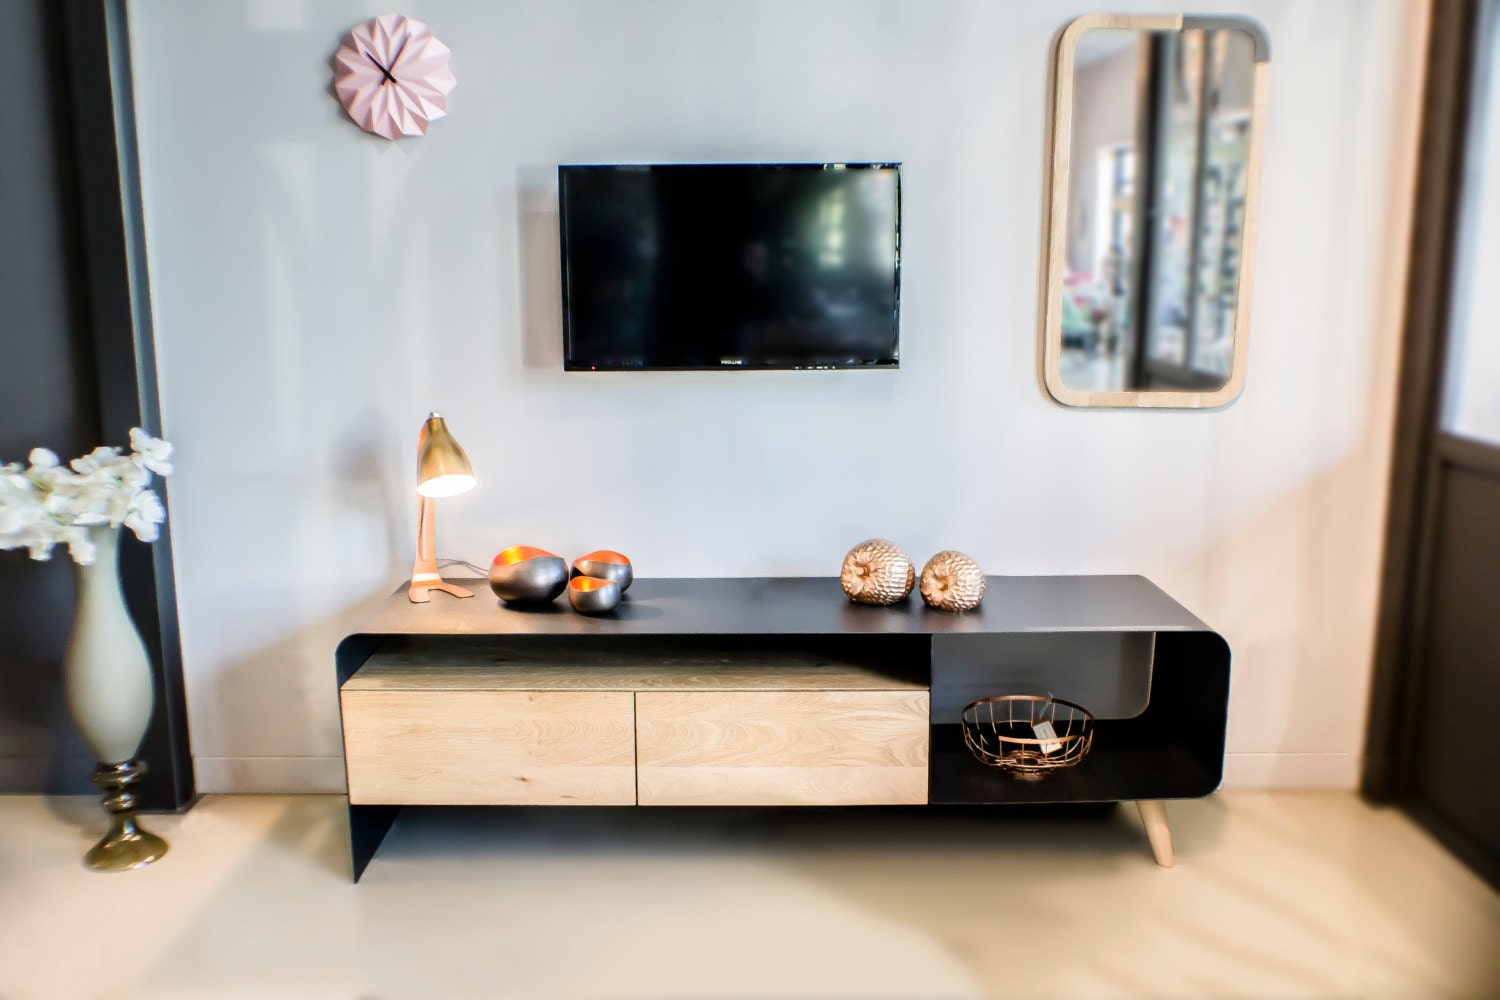 Meuble Tv Collection L L M Tal Et Bois Iron Steel And Wood  # Meuble Tv Triangulaire